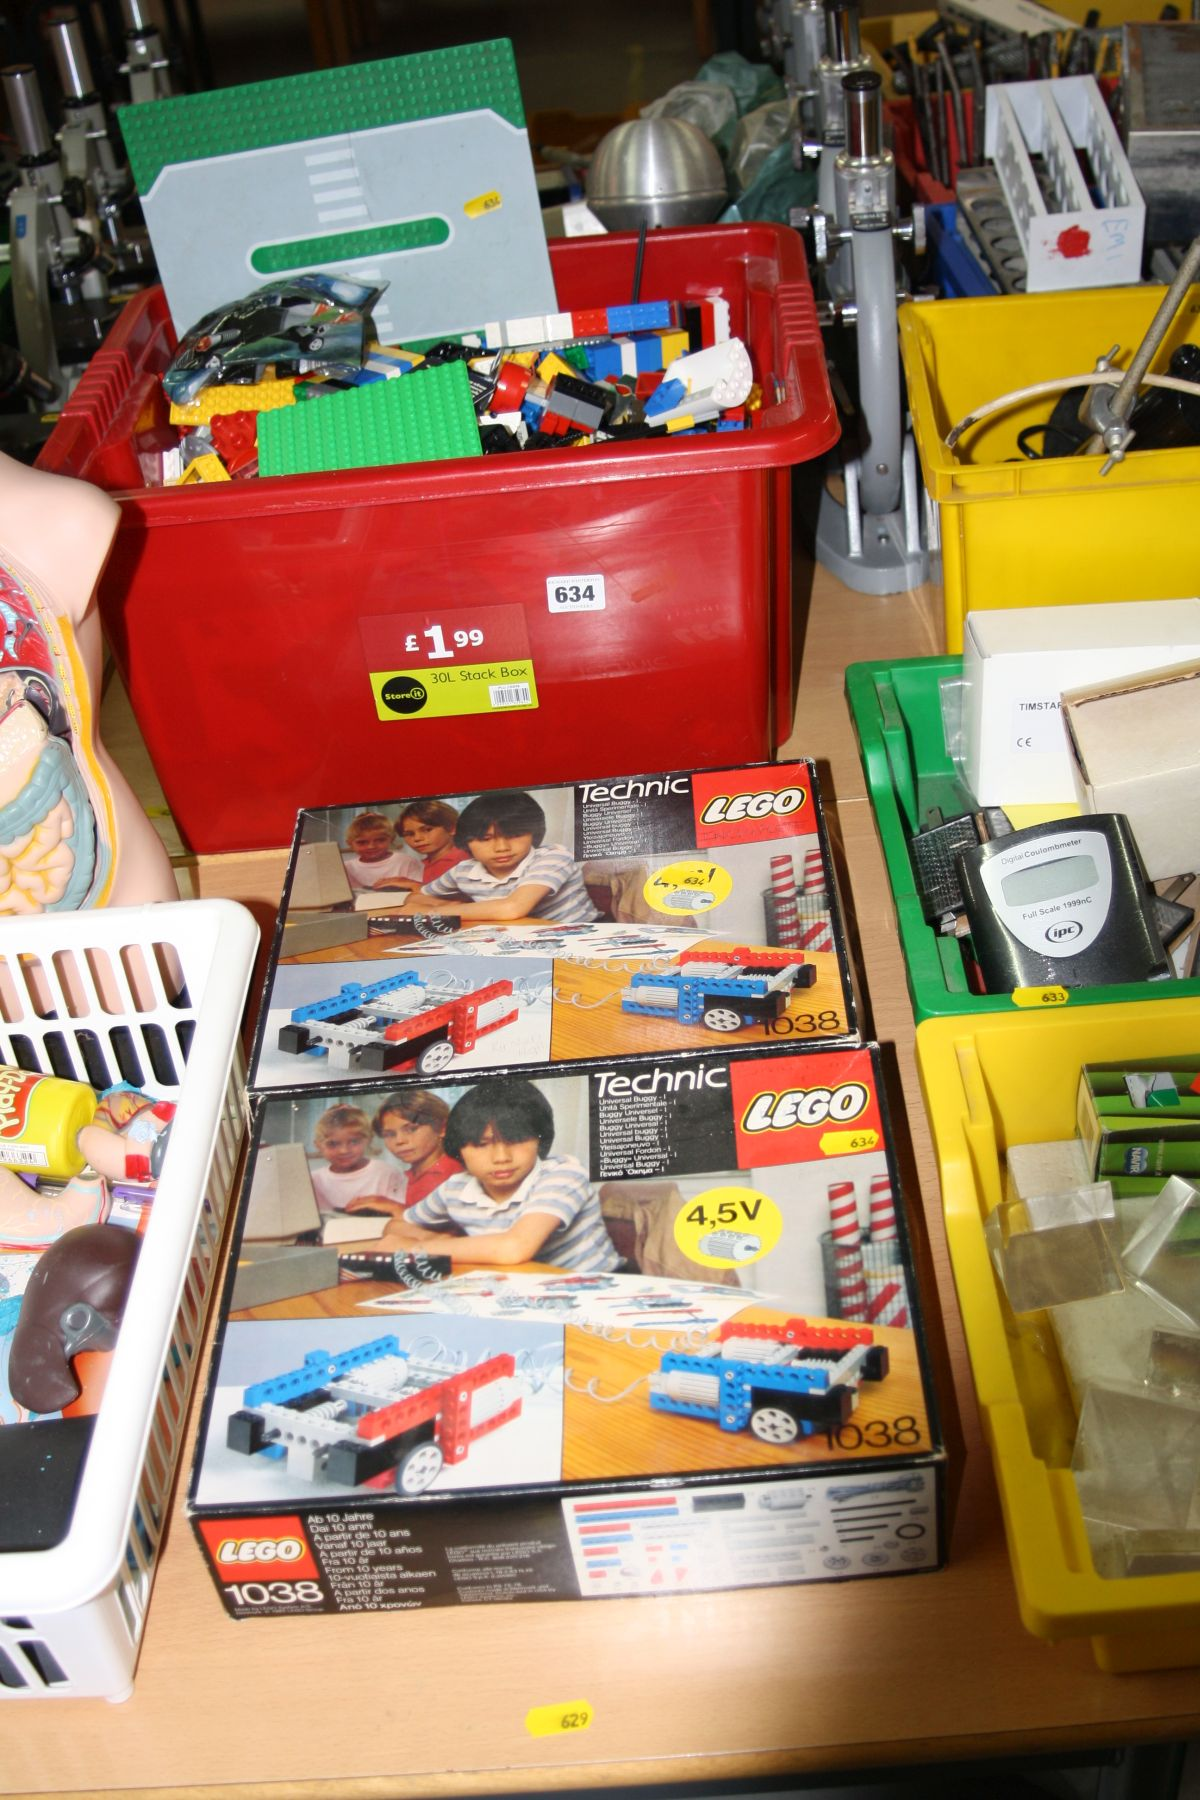 Lot 634 - TWO INCOMPLETE LEGO TECHNIC SETS 1038, and a box of loose Lego